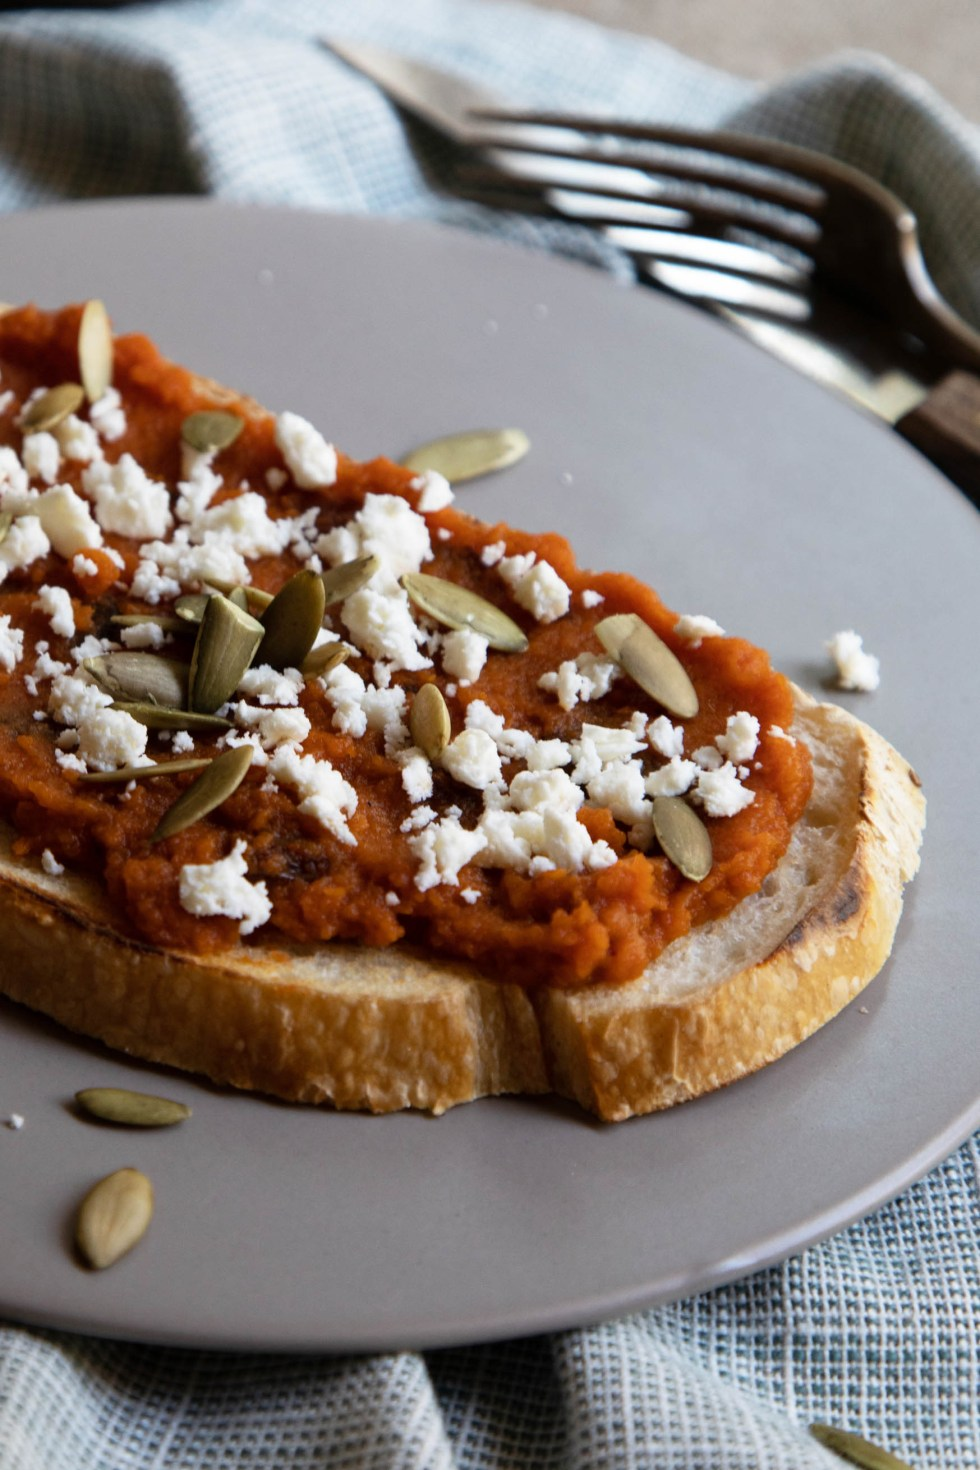 Easy Pumpkin Toast for Fall. Use up leftover pumpkin puree or break into a new jar or can for this scrumptious pumpkin toast that everyone will love. This savory pumpkin recipe is delicious or make a sweet pumpkin toast for fun!! #lmrecipes #pumpkin #fall #october #halloween